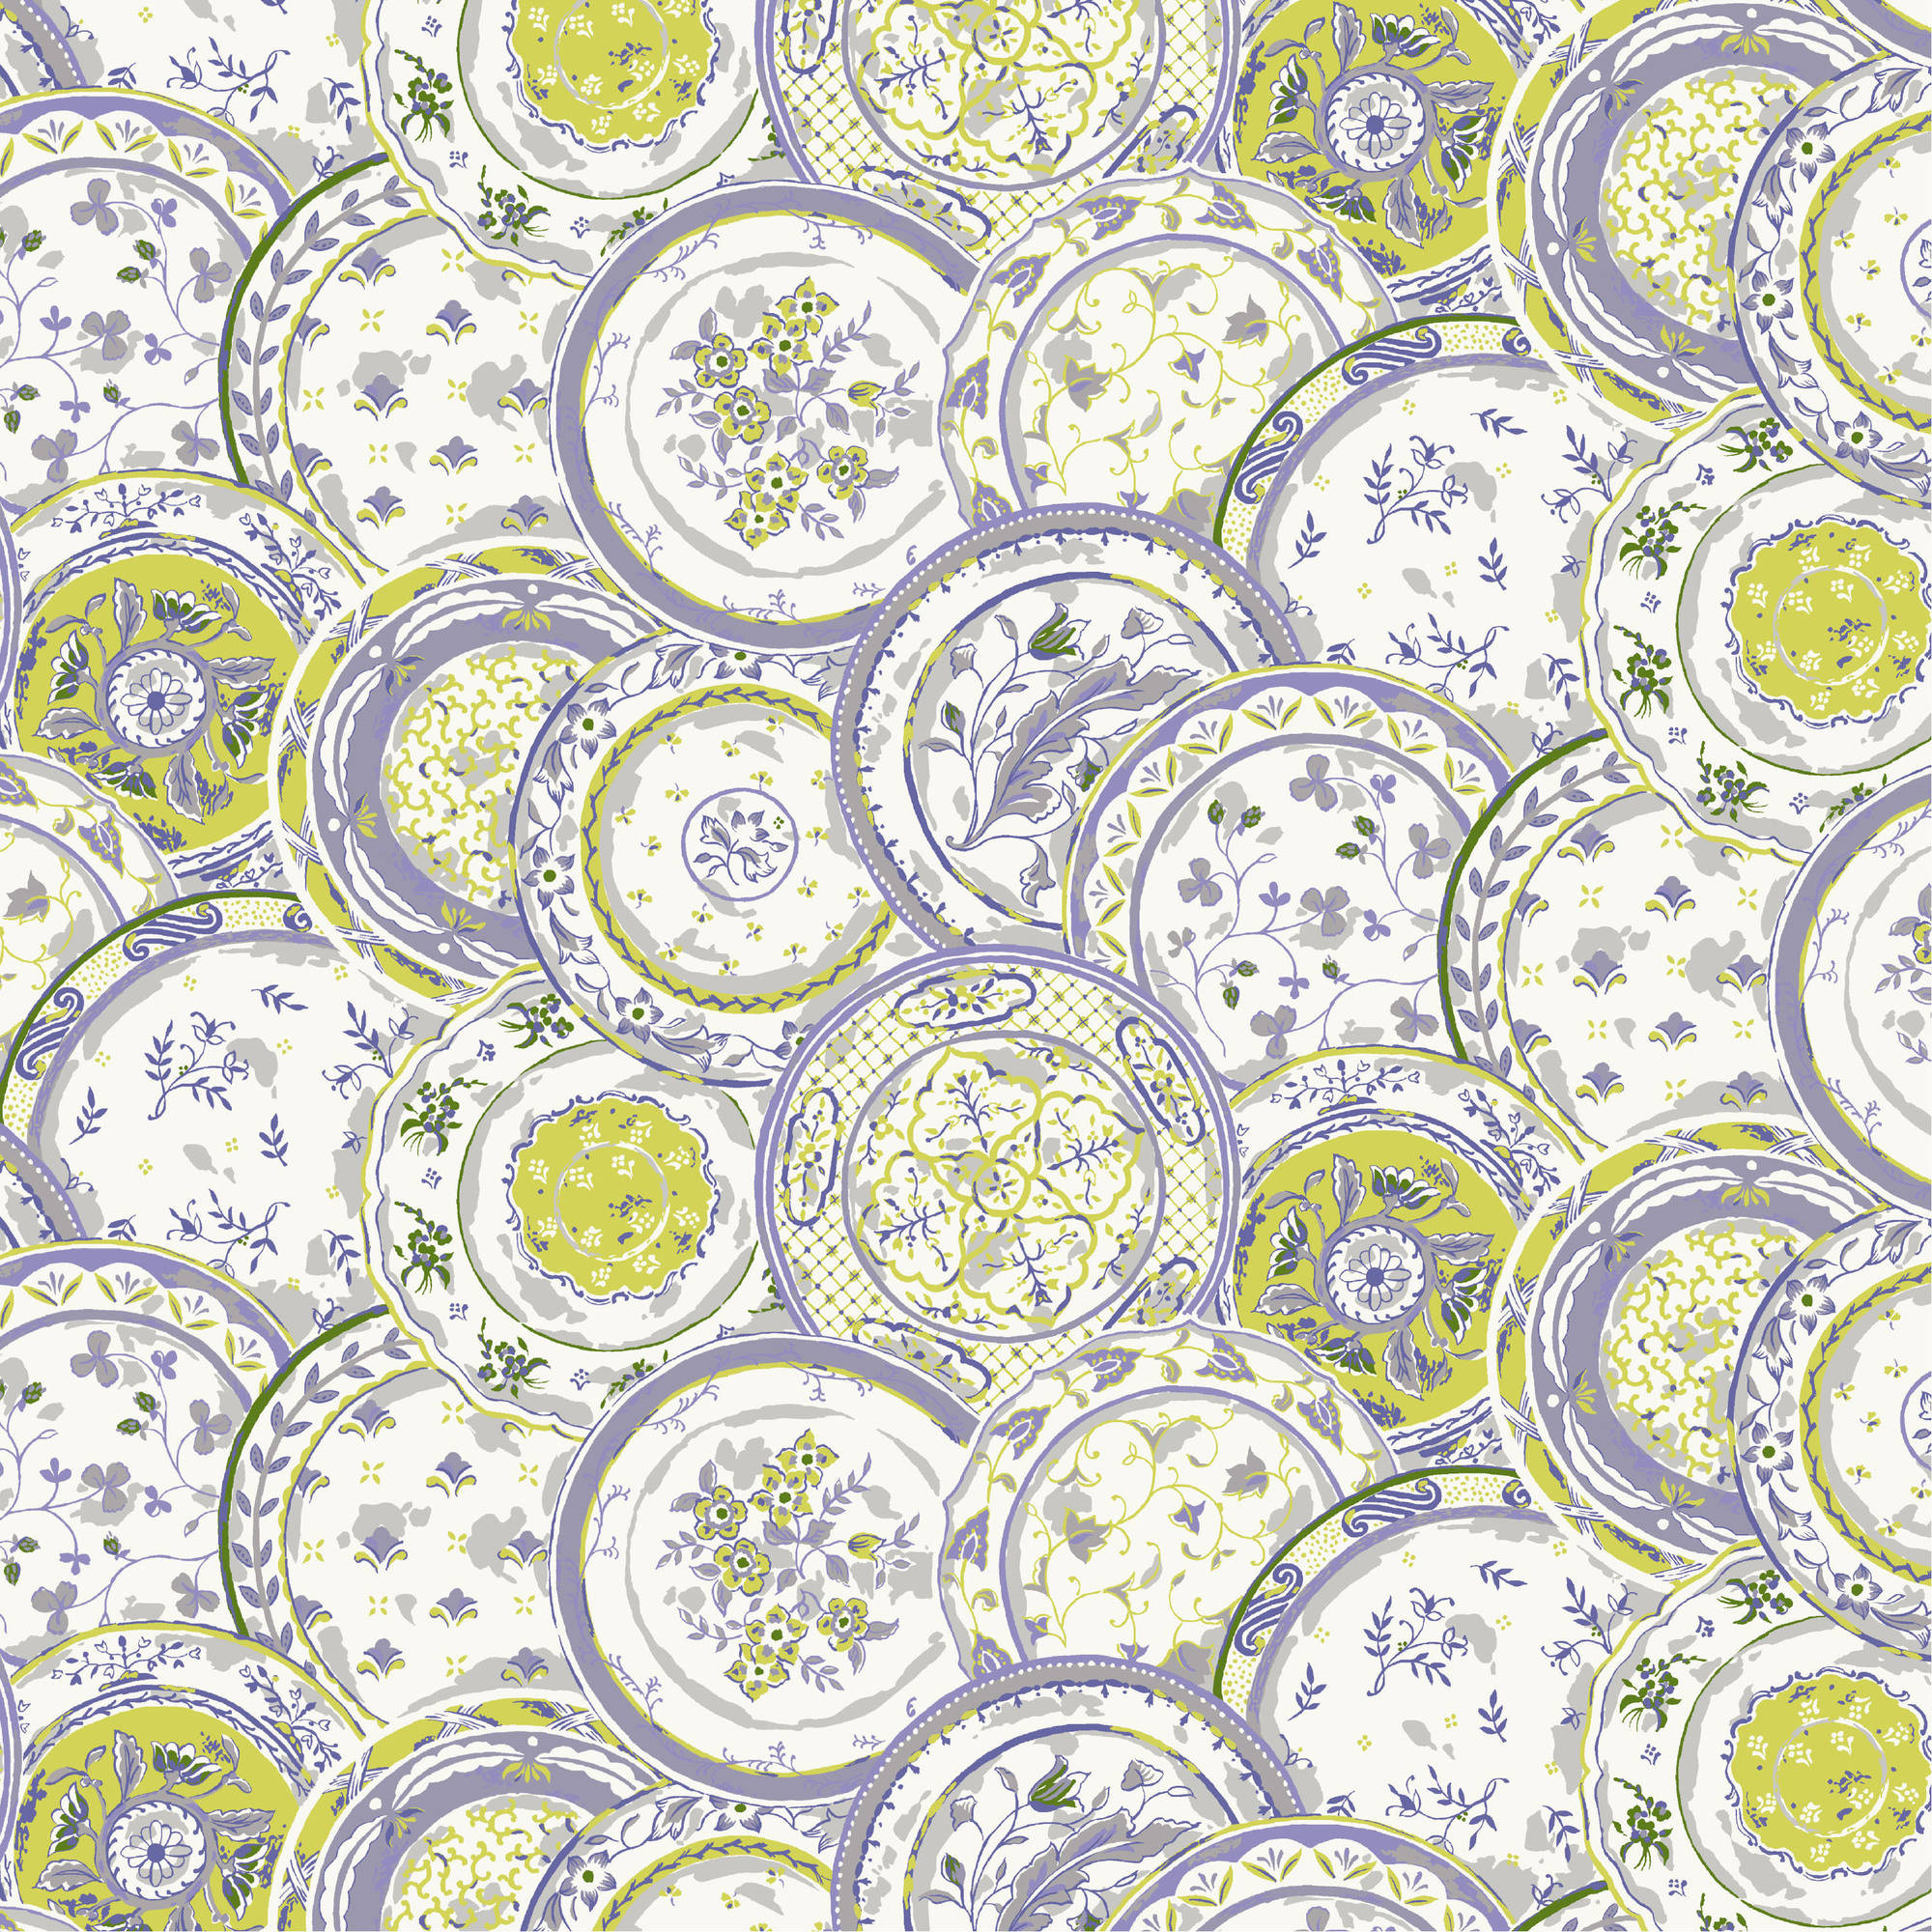 Waverly Inspirations 100% Cotton Print fabric, Quilting fabric, Home Decor ,44'', 140GSM